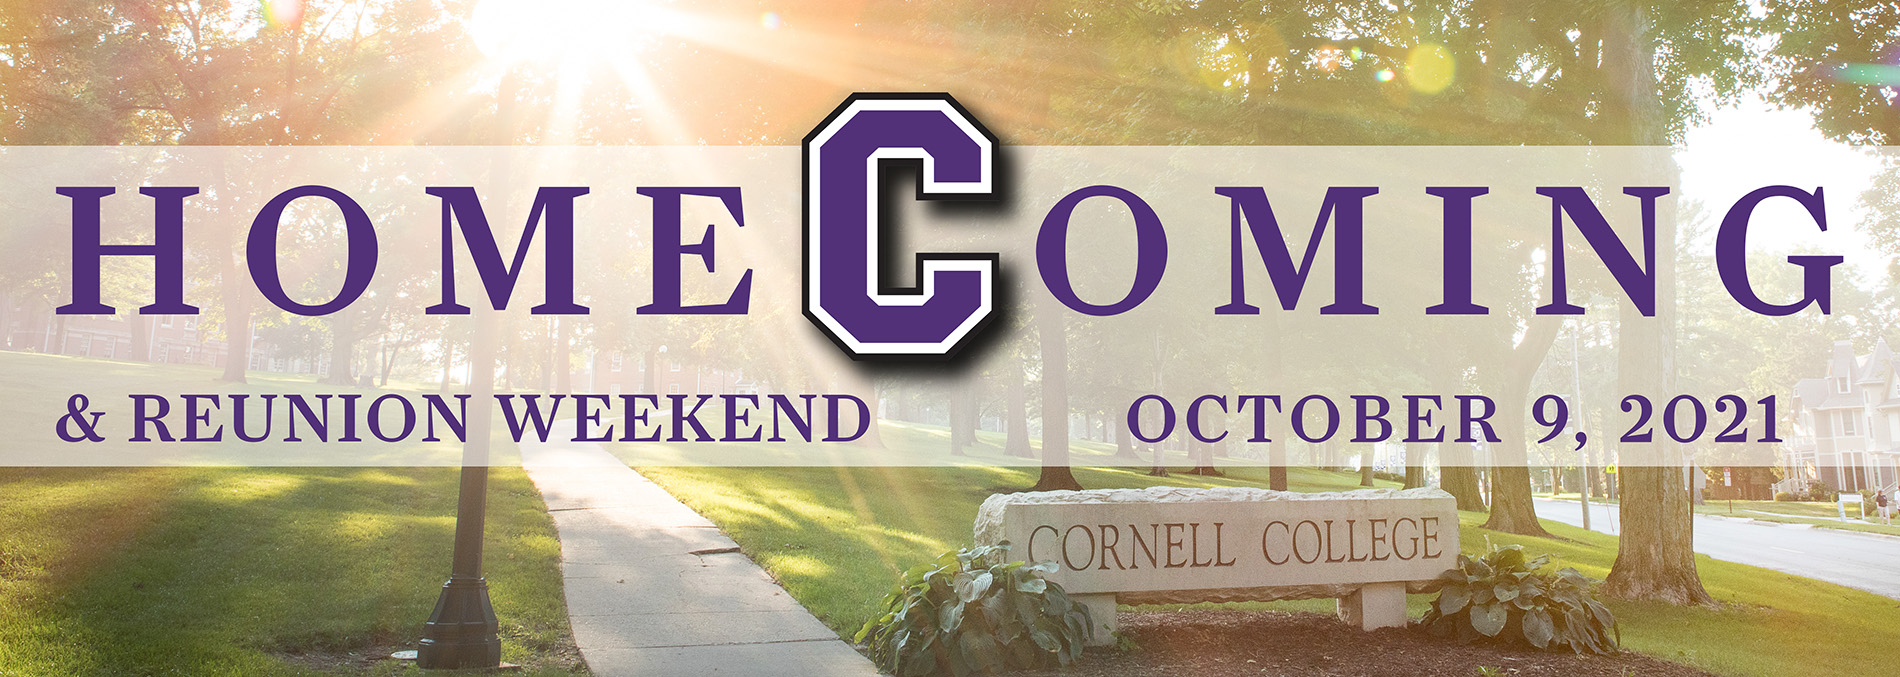 Homecoming 2021 banner, Oct. 9